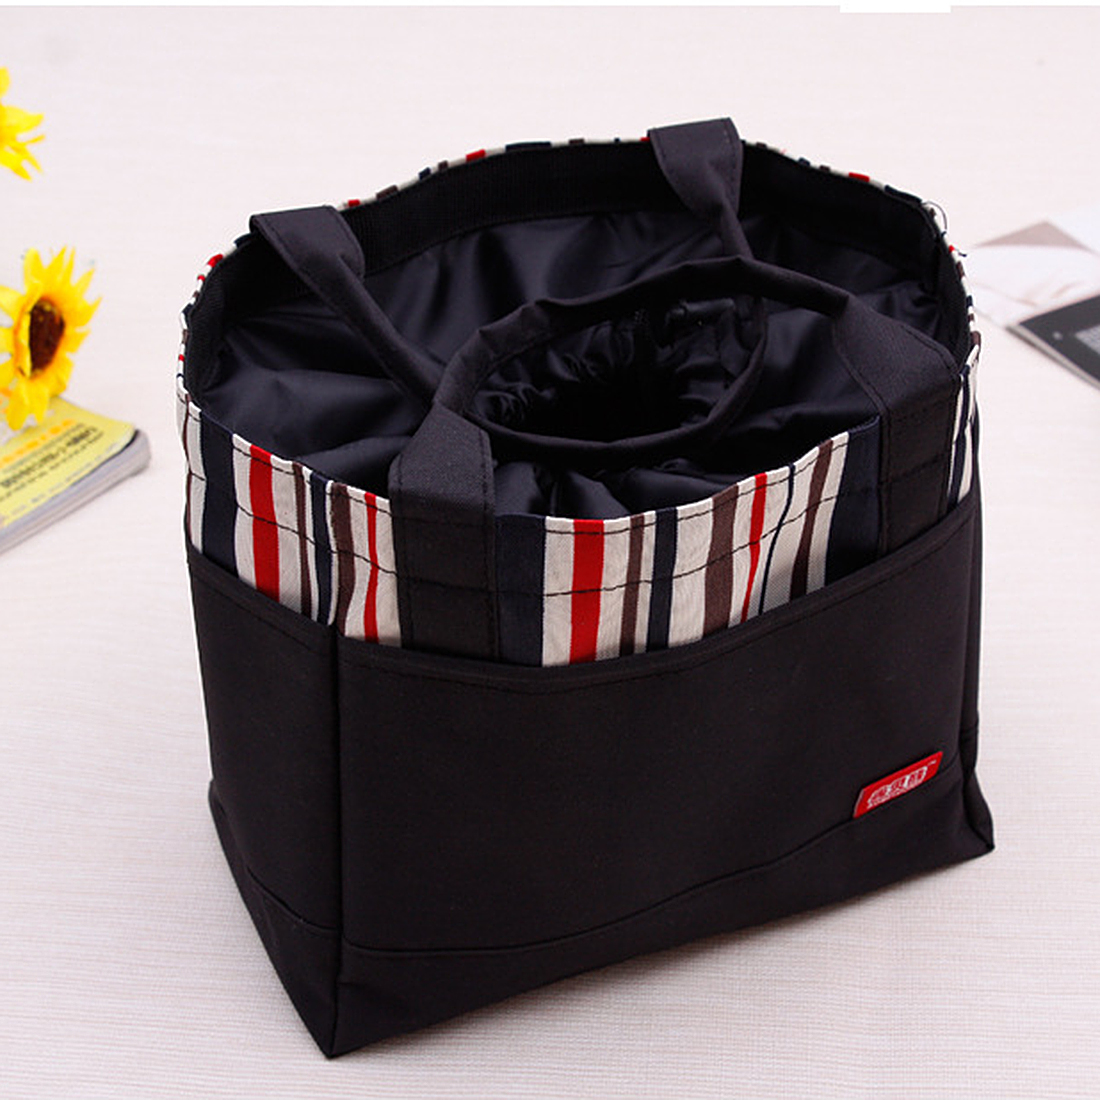 Stripes Lunch Box Storage Bag Portable Picnic Tote Pouch with Drawing String - Dark Blue,Coffee,Black,Green(China (Mainland))